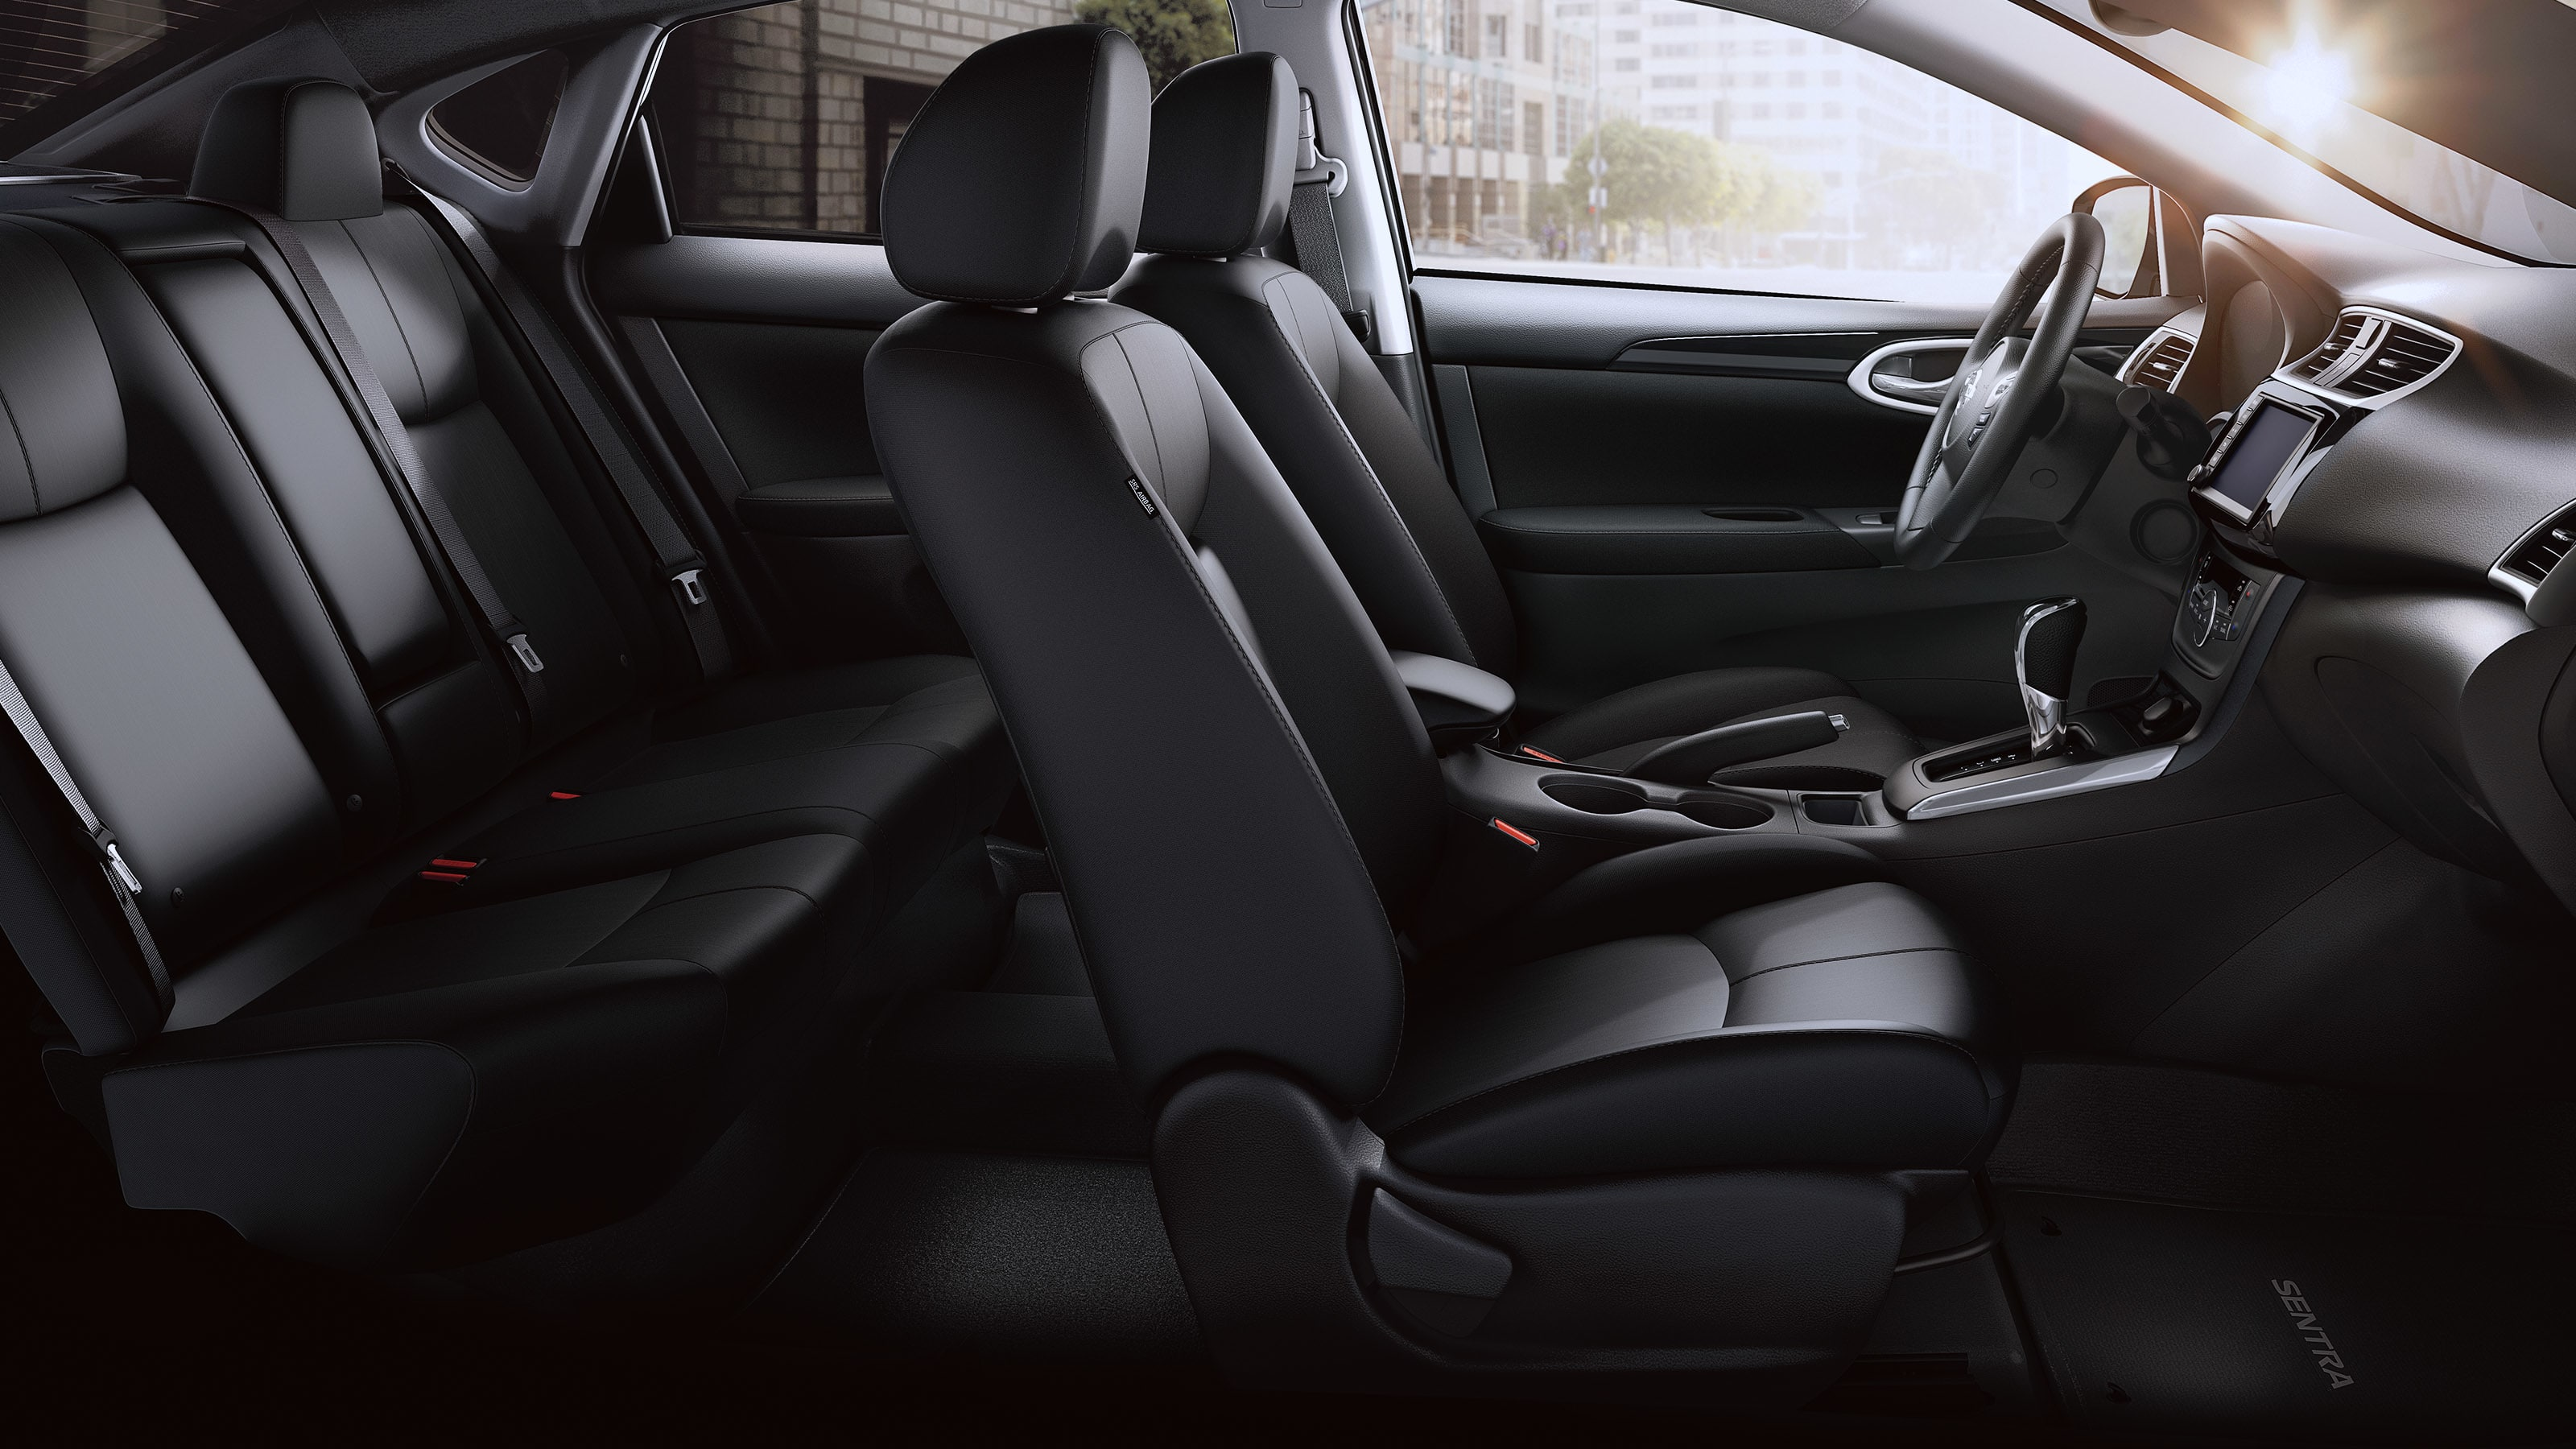 Plenty of Space in the 2019 Nissan Sentra